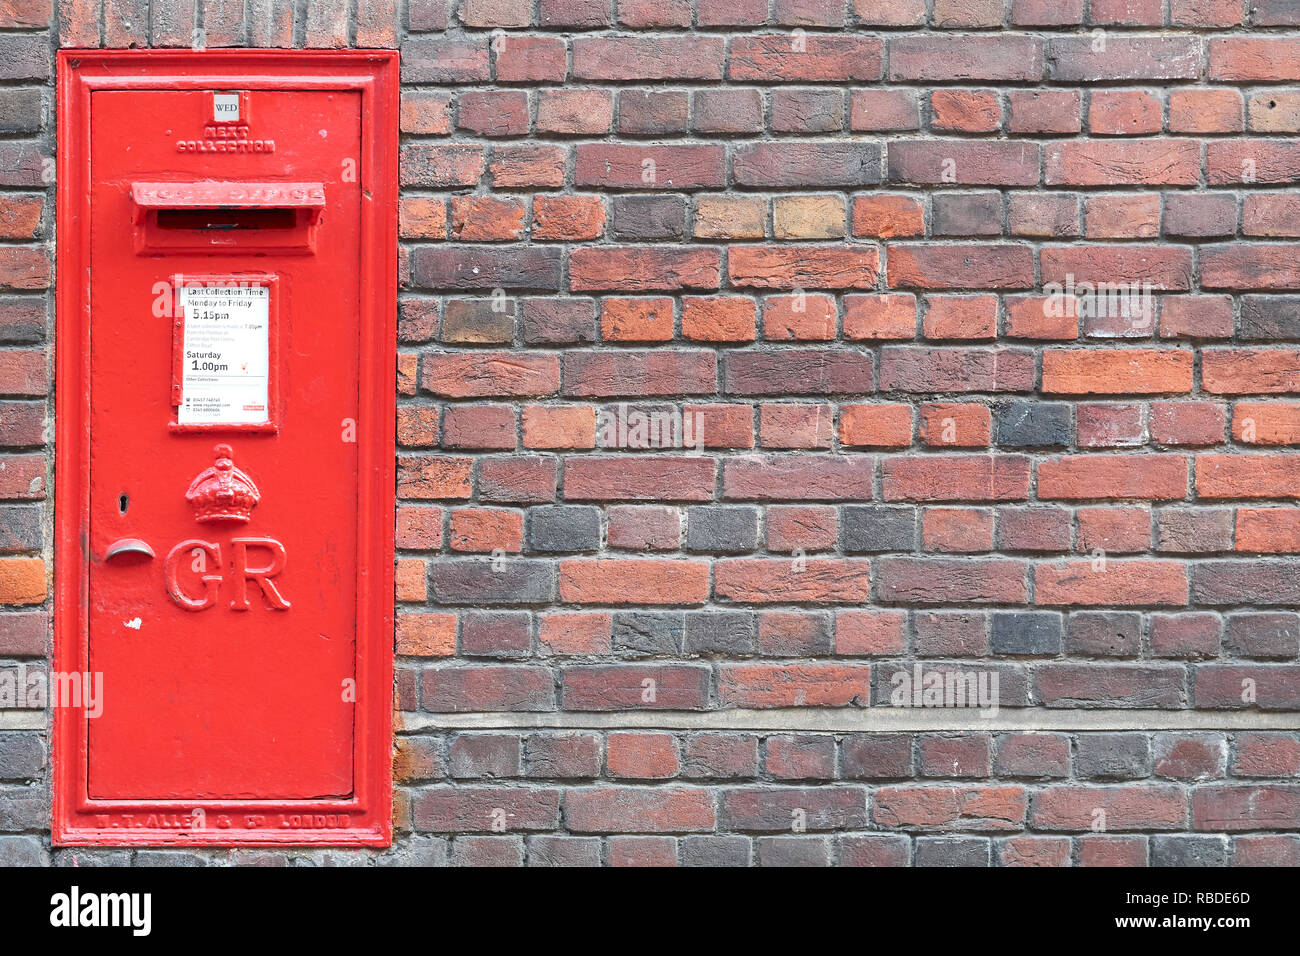 Red post box recessed in an ouside brick wall of Sidney Sussex college, Cambridge university, England. - Stock Image